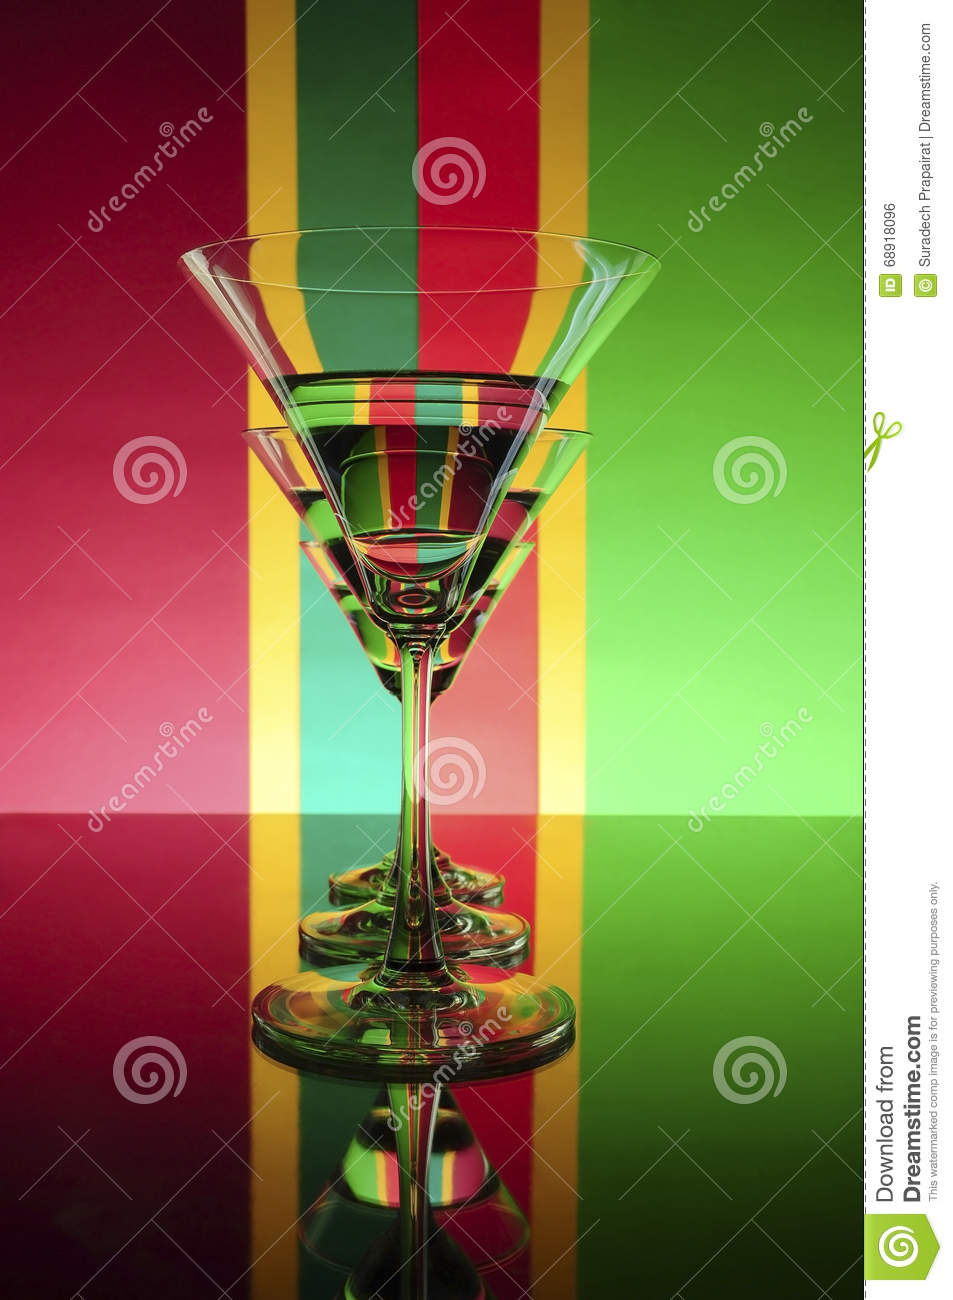 Glass on a colors background (Red ,Green ,Yellow)